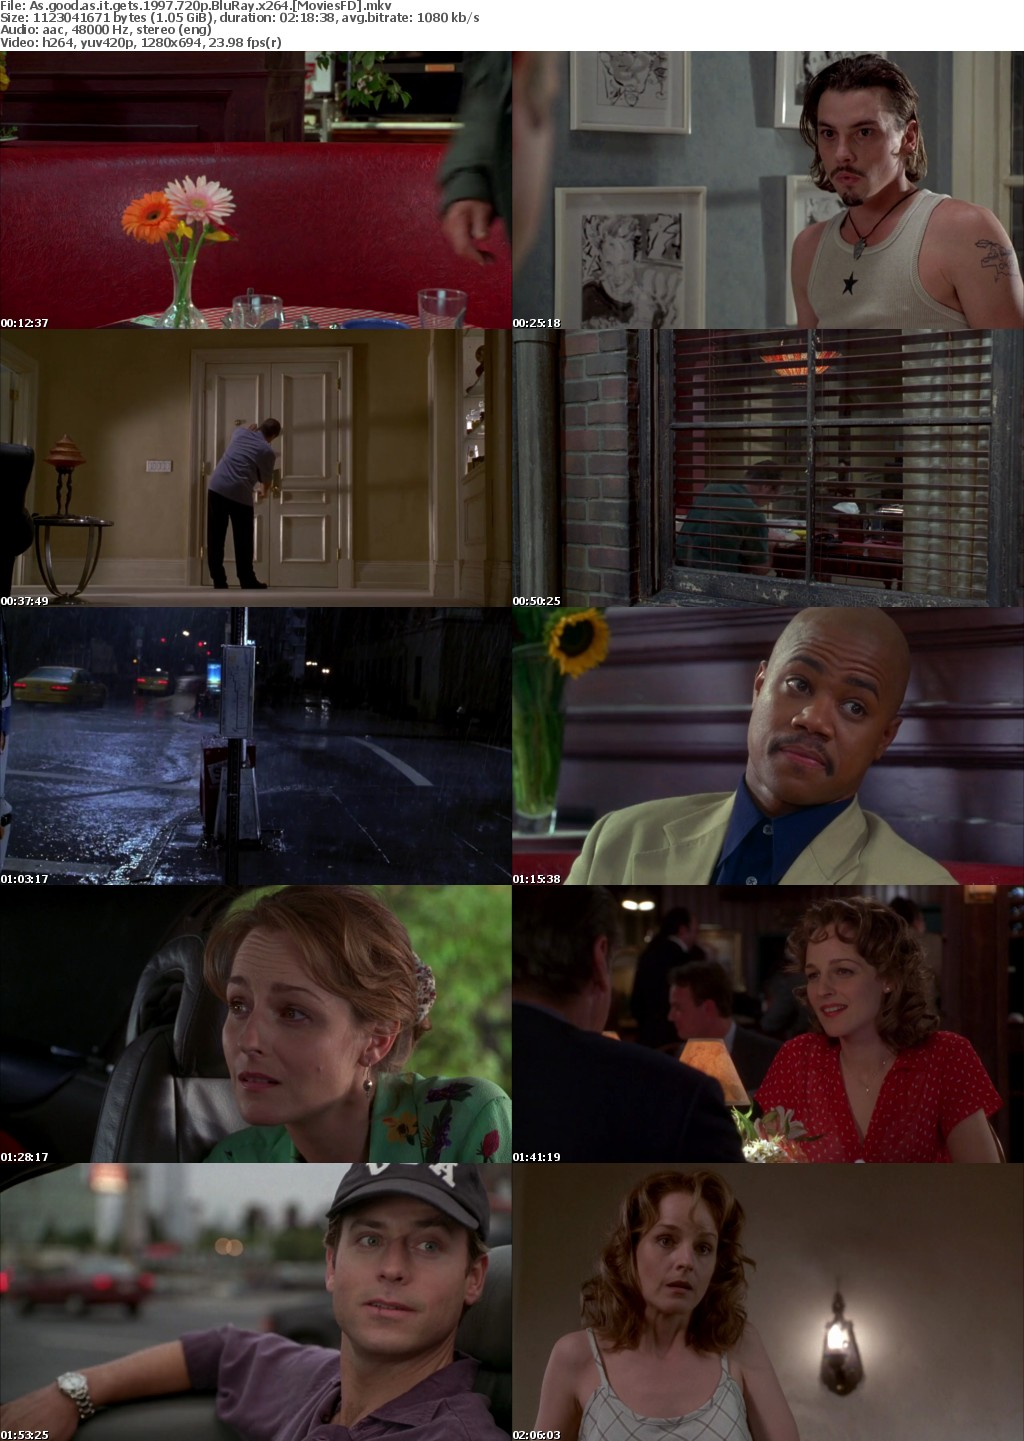 As good as it gets 1997 720p BluRay x264 MoviesFD